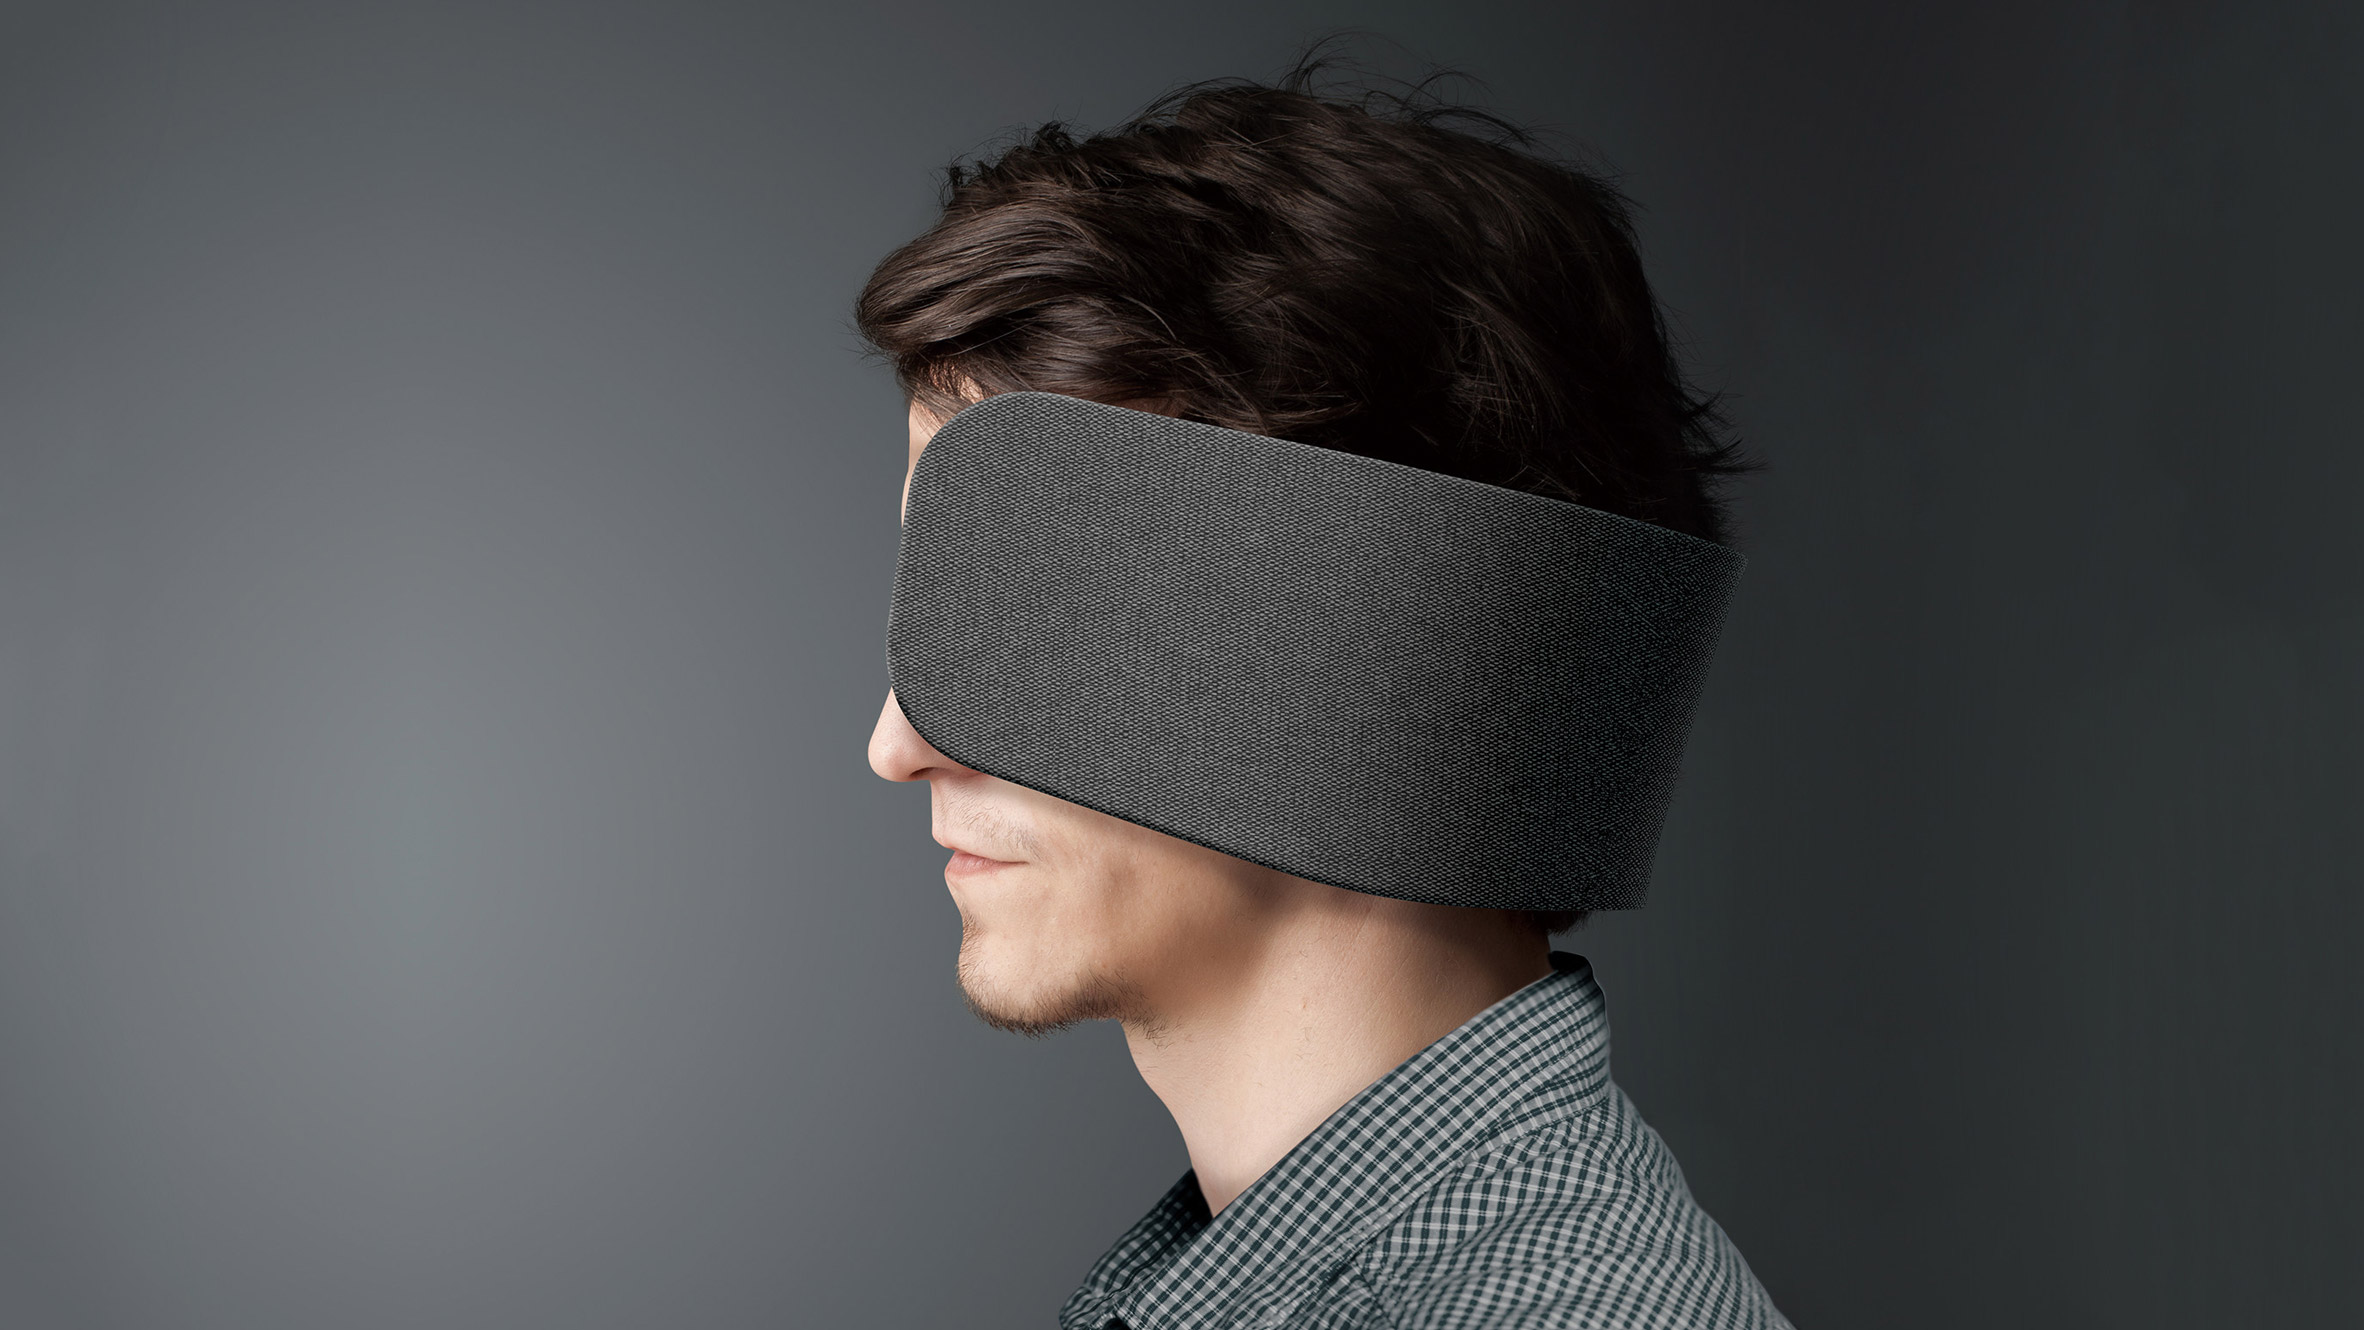 Panasonic designed human blinders to block out open-plan office distraction